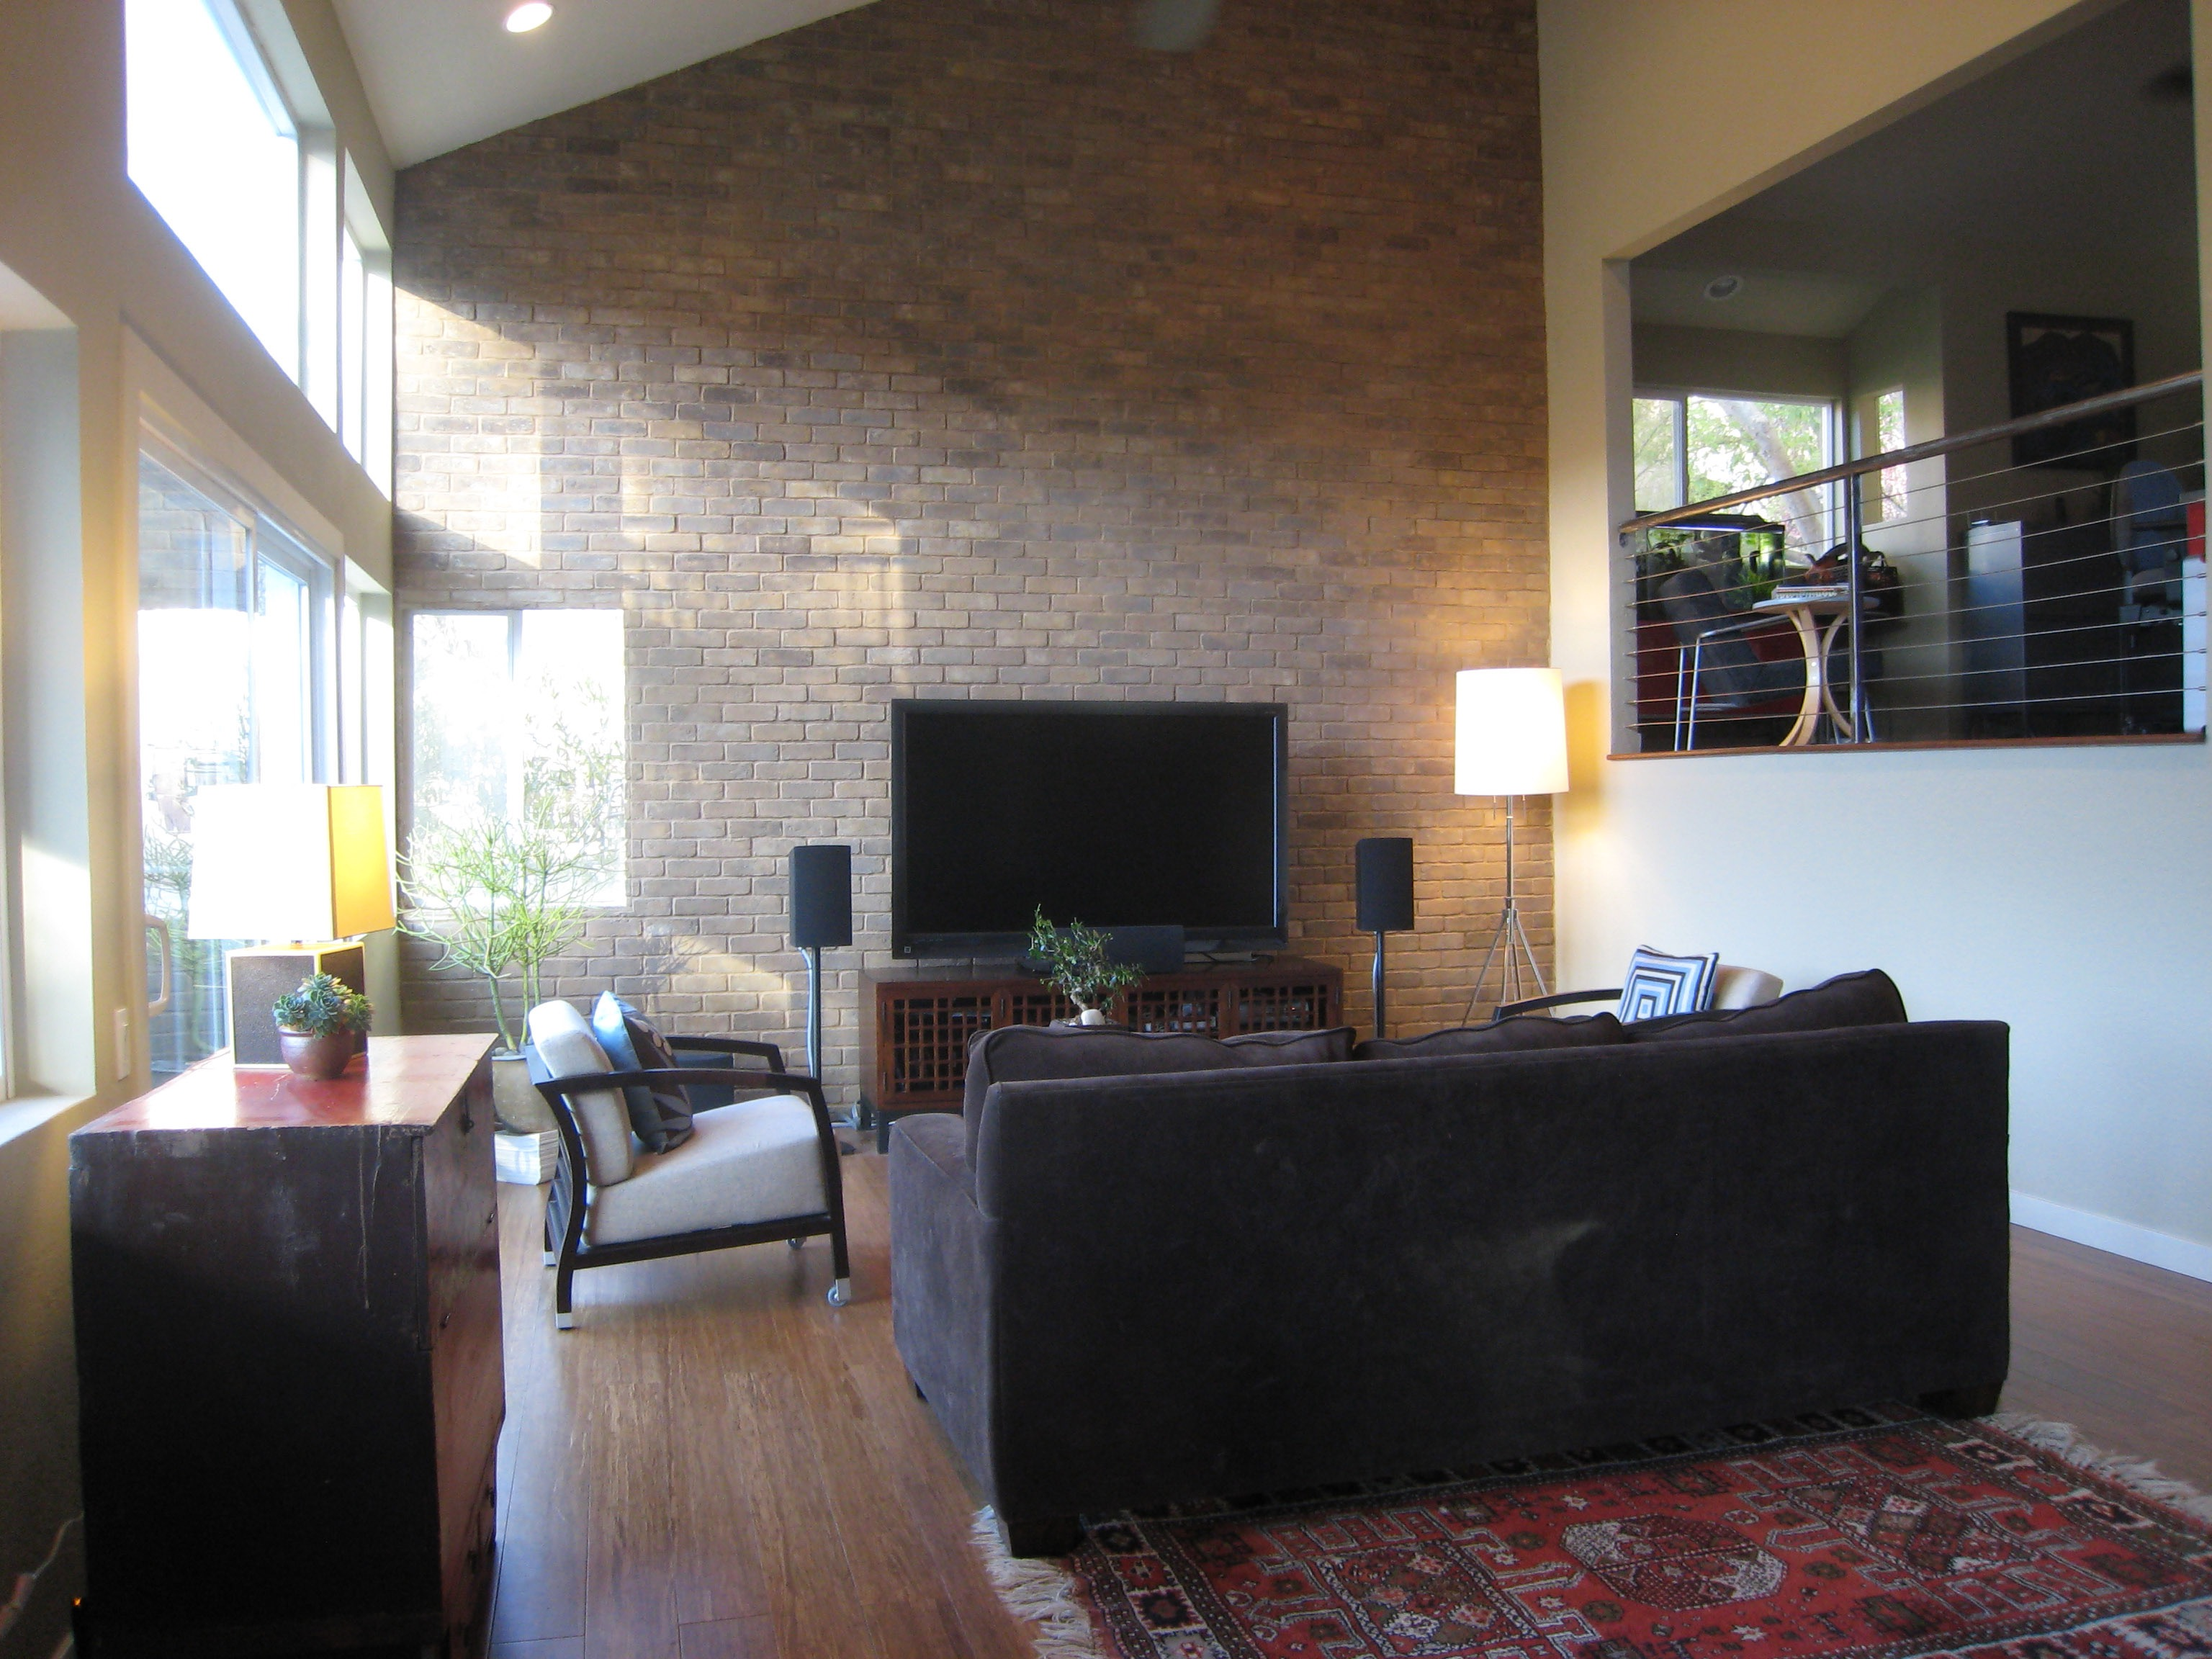 Easy Decor For Modern Living Room With TV (View 10 of 31)